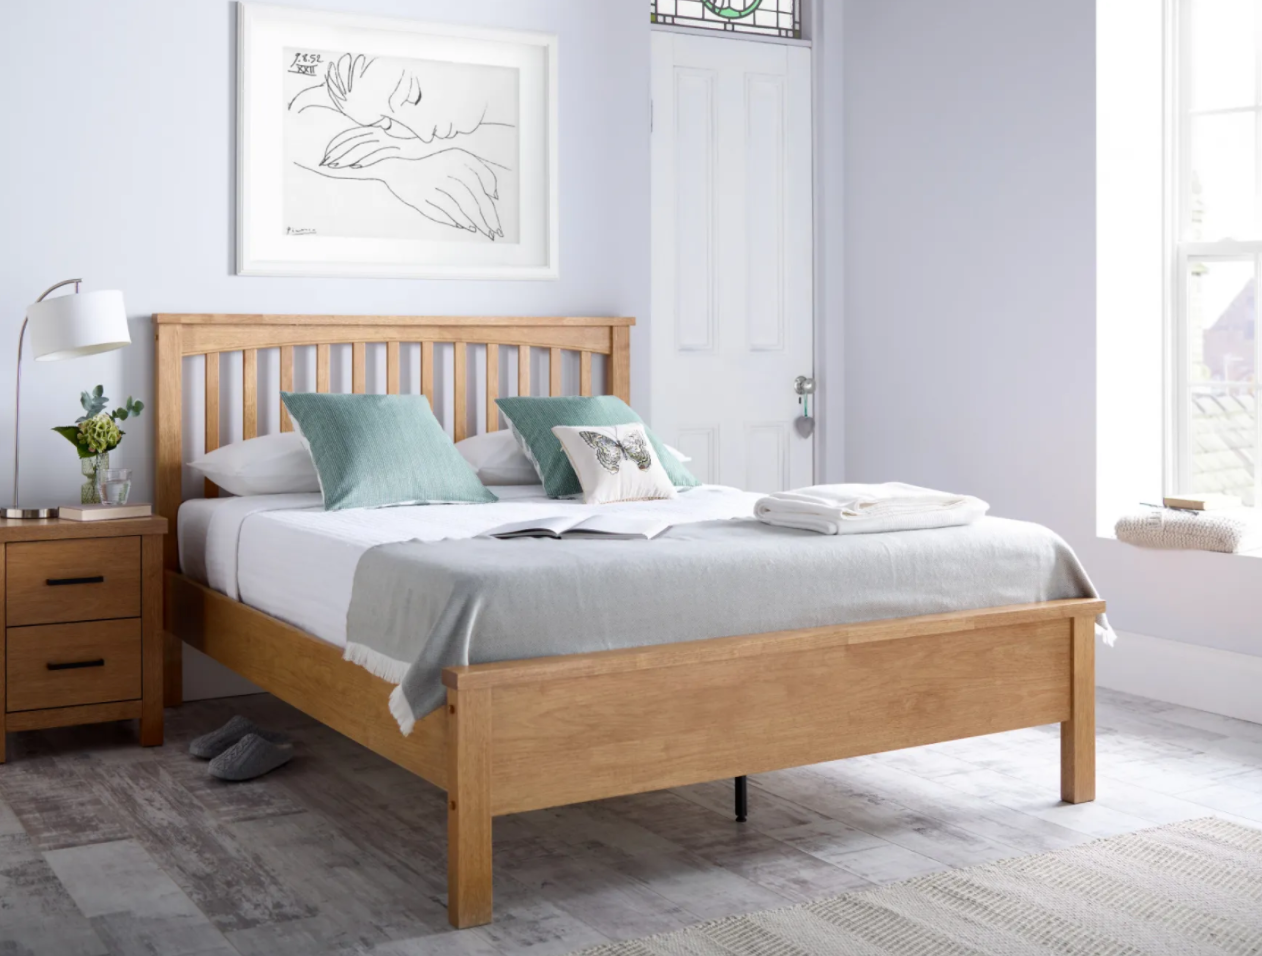 oakridge wooden bed frame